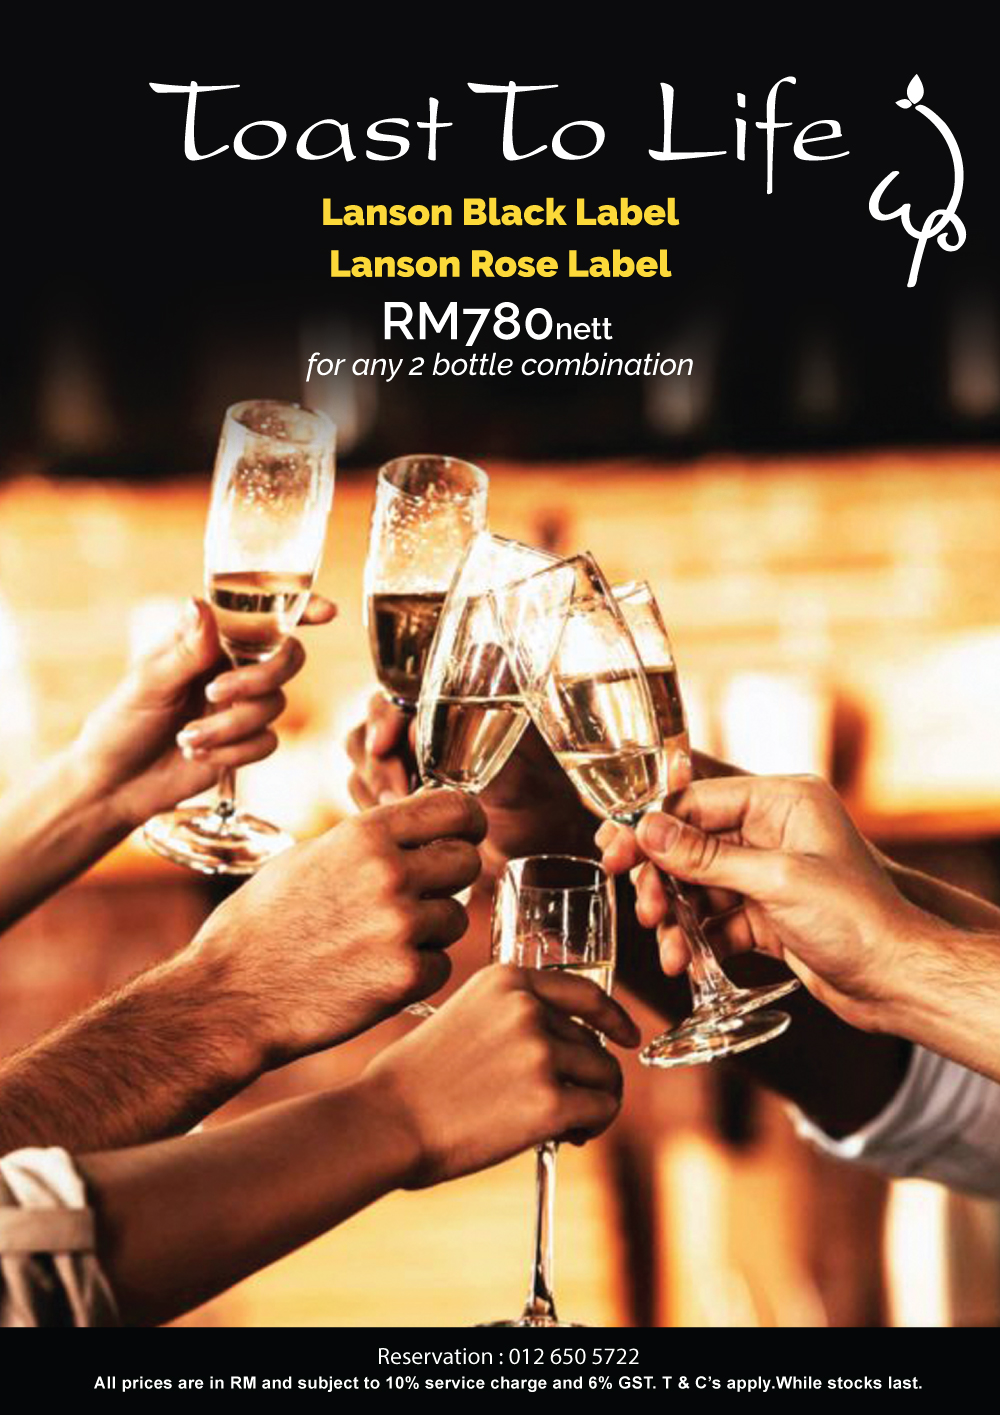 Lanson-Toast-To-Life-FB-Visual_Sep17